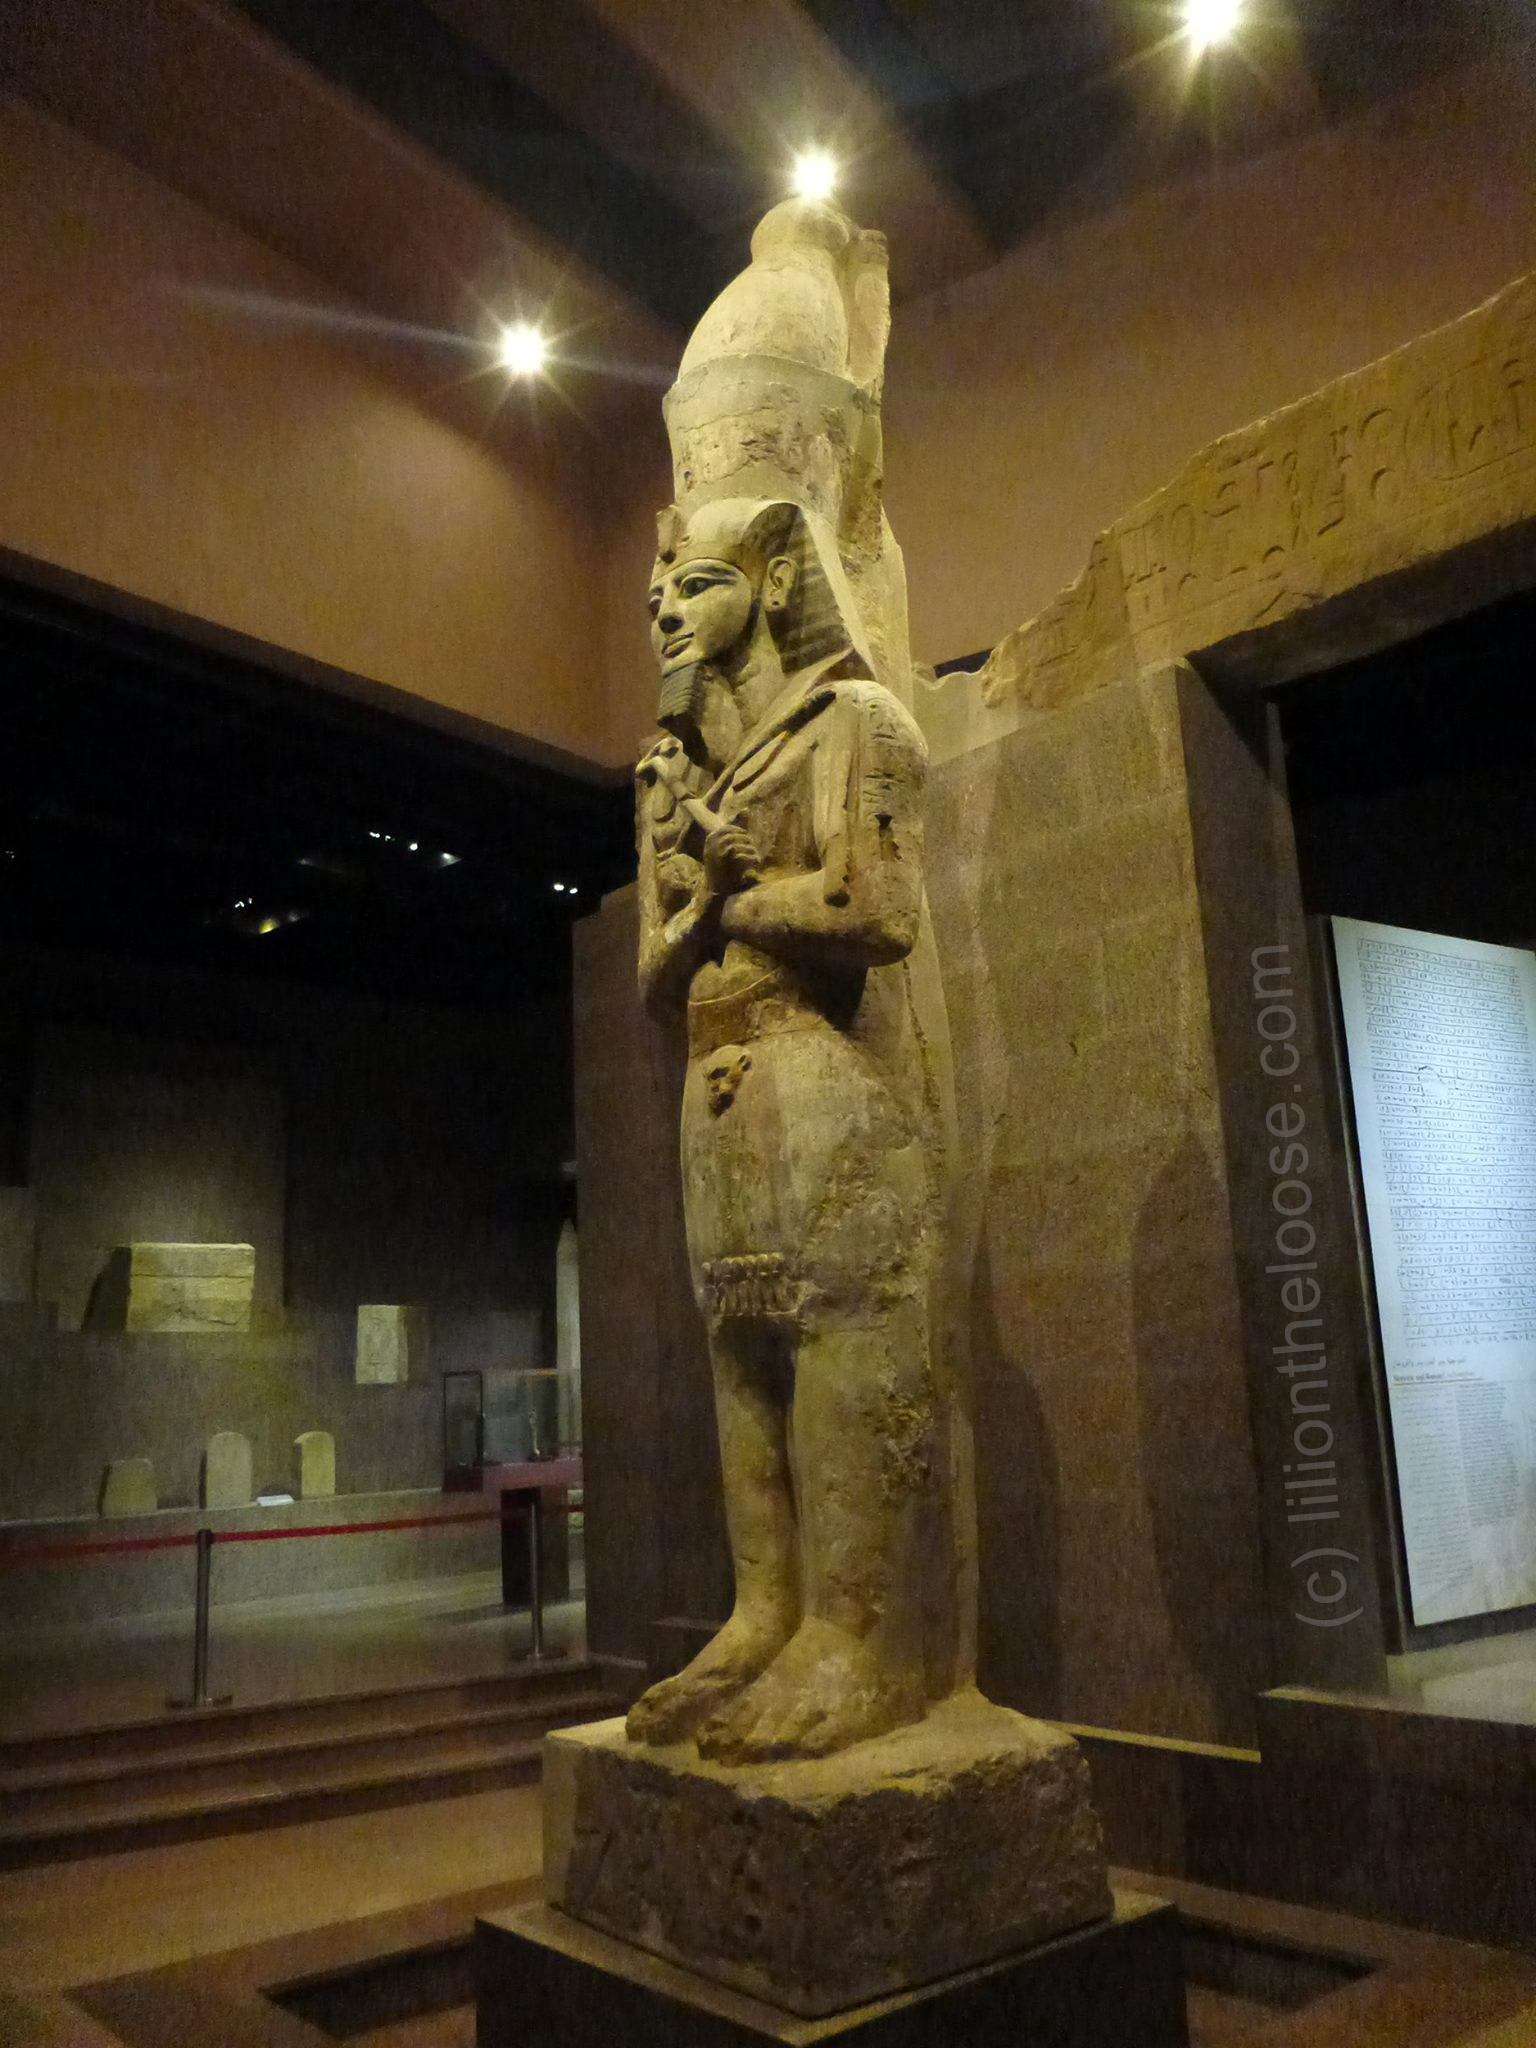 Change Comes To Egypt >> Museum Monday: Ramses II of the Temple of Gerf Hussein - Lili on the Loose